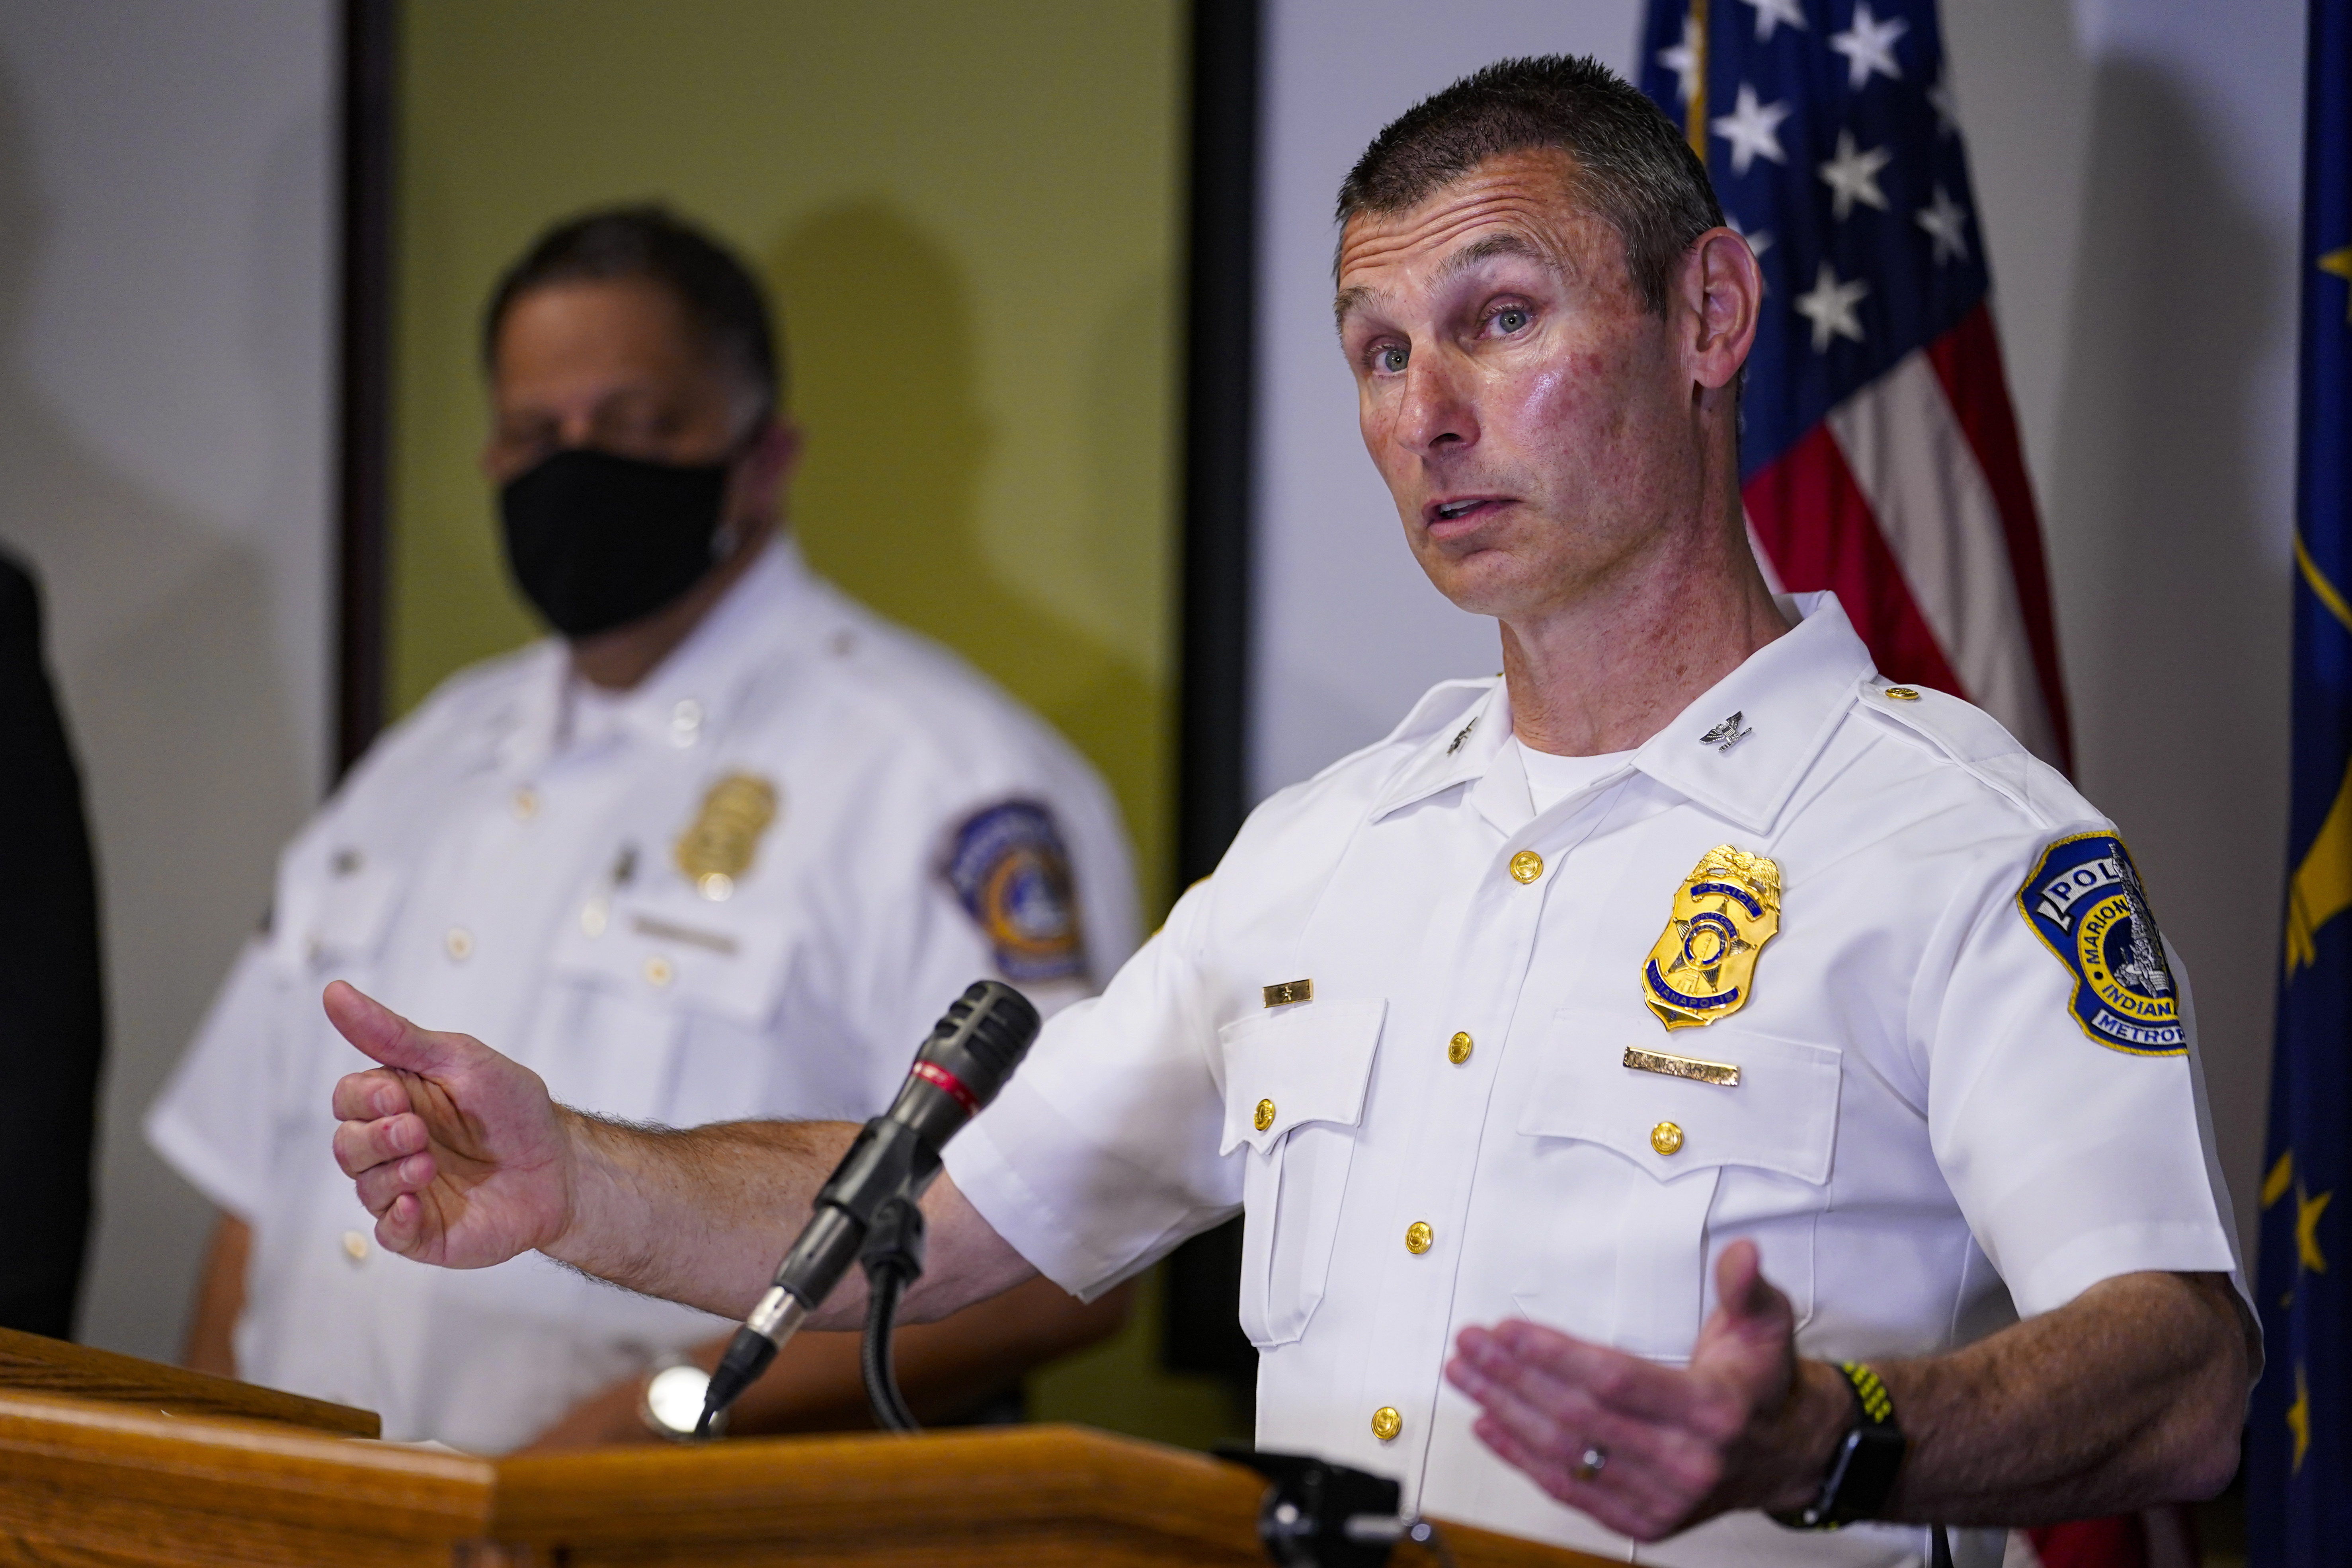 Indianapolis Metropolitan Police Department Deputy Chief Craig McCartt speaks at a press conference about the shooting at a FedEx facility in Indianapolis on Friday, April 16, 2021.